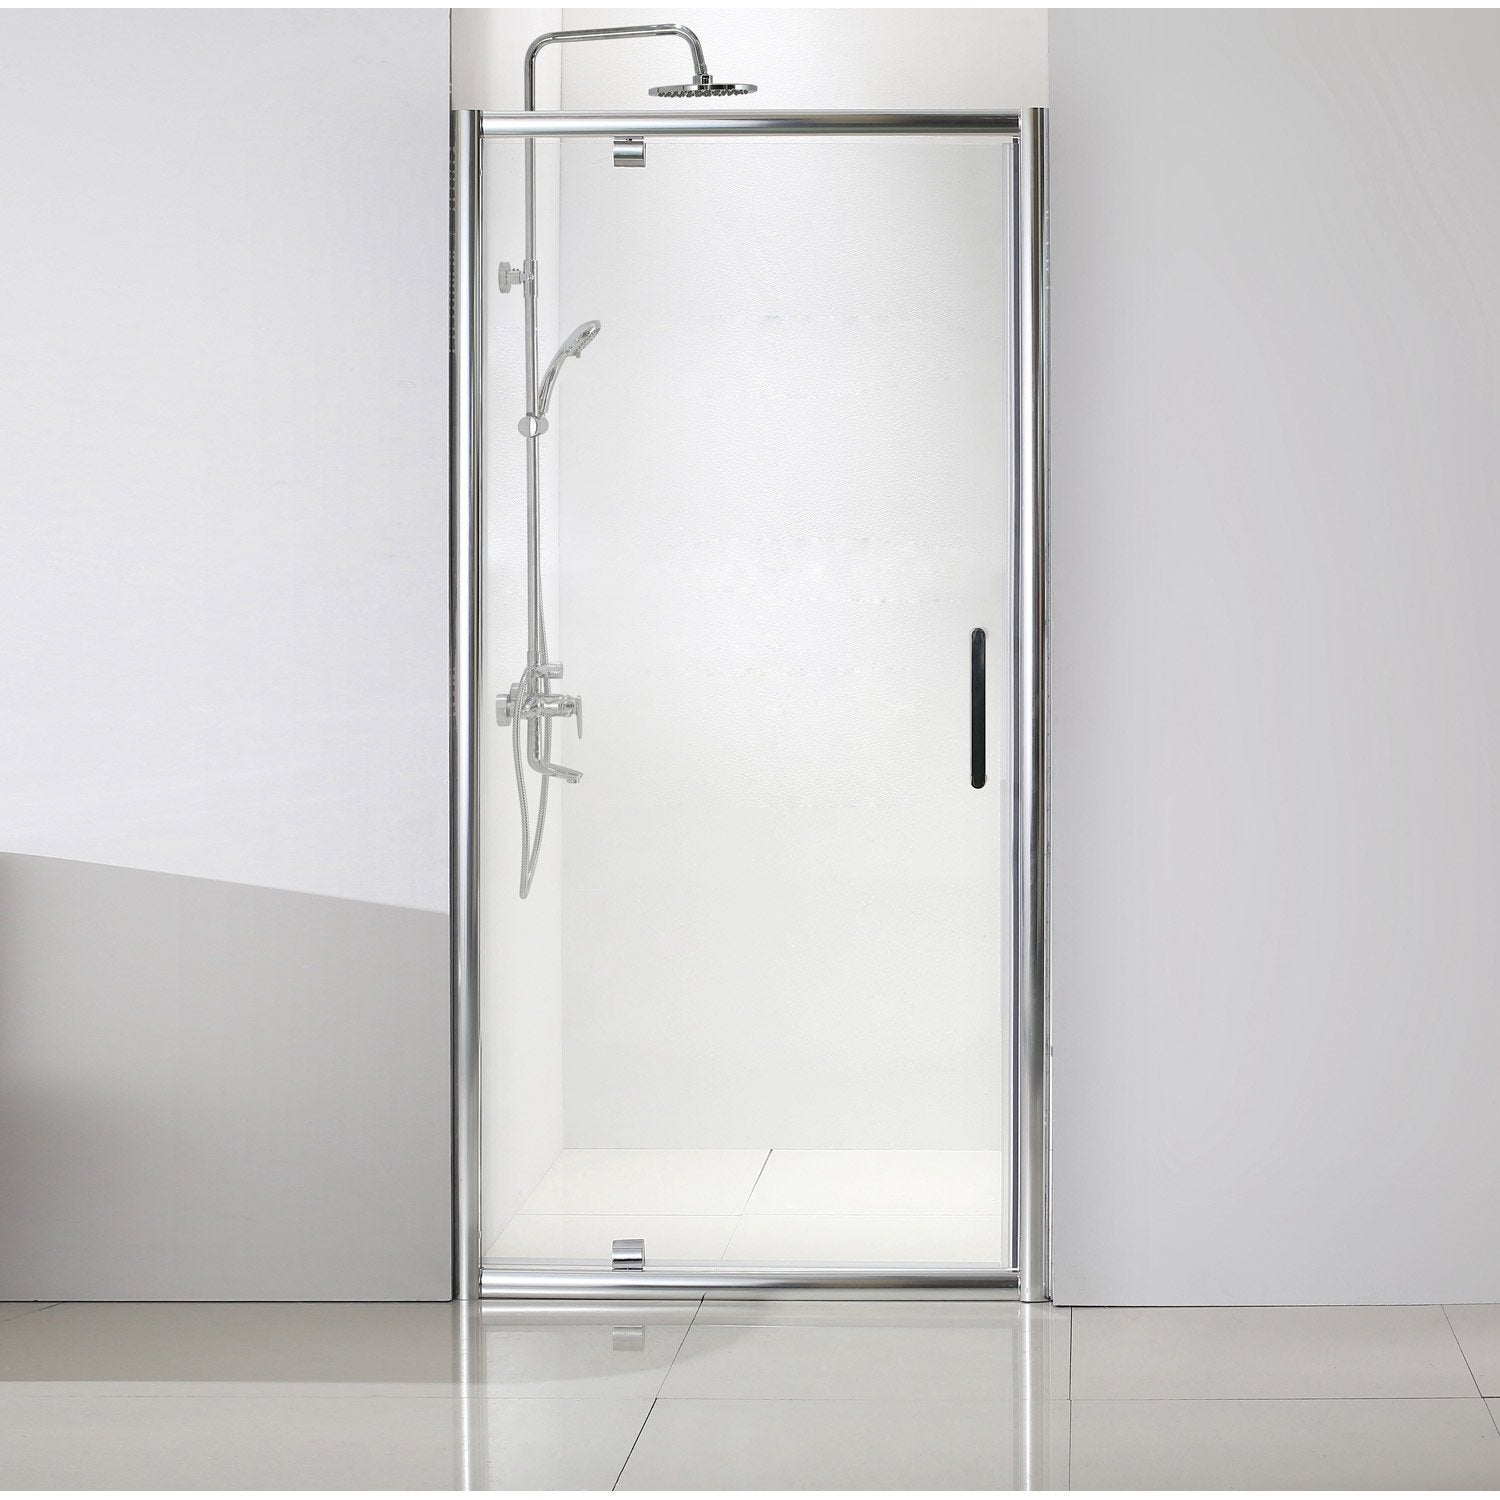 porte de douche pivotante 90 cm transparent quad leroy merlin. Black Bedroom Furniture Sets. Home Design Ideas